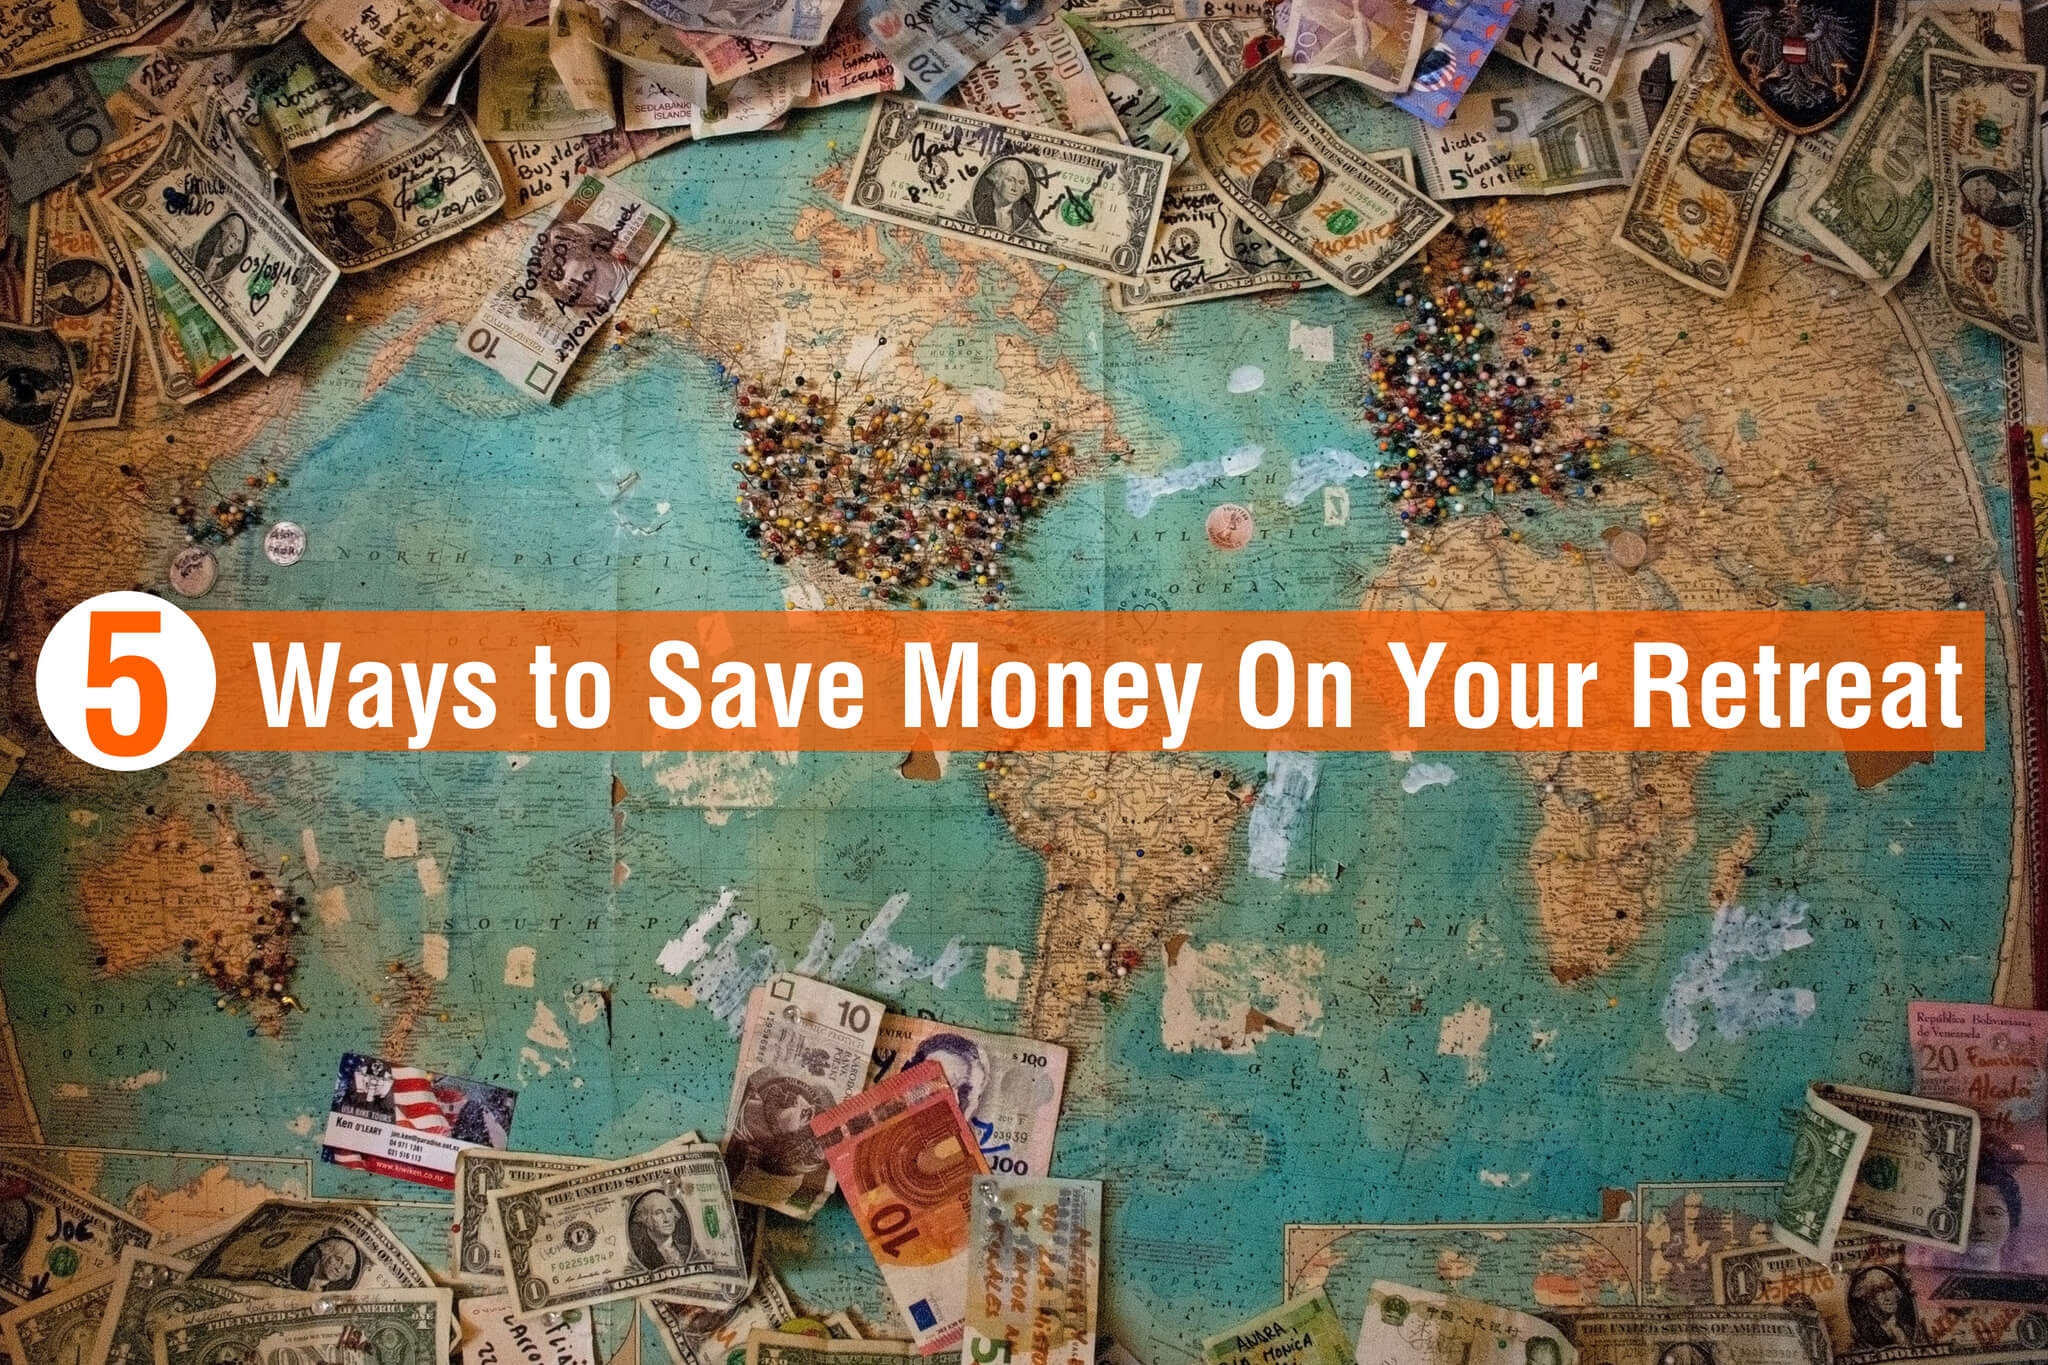 5 Ways to Save Money On Your Retreat